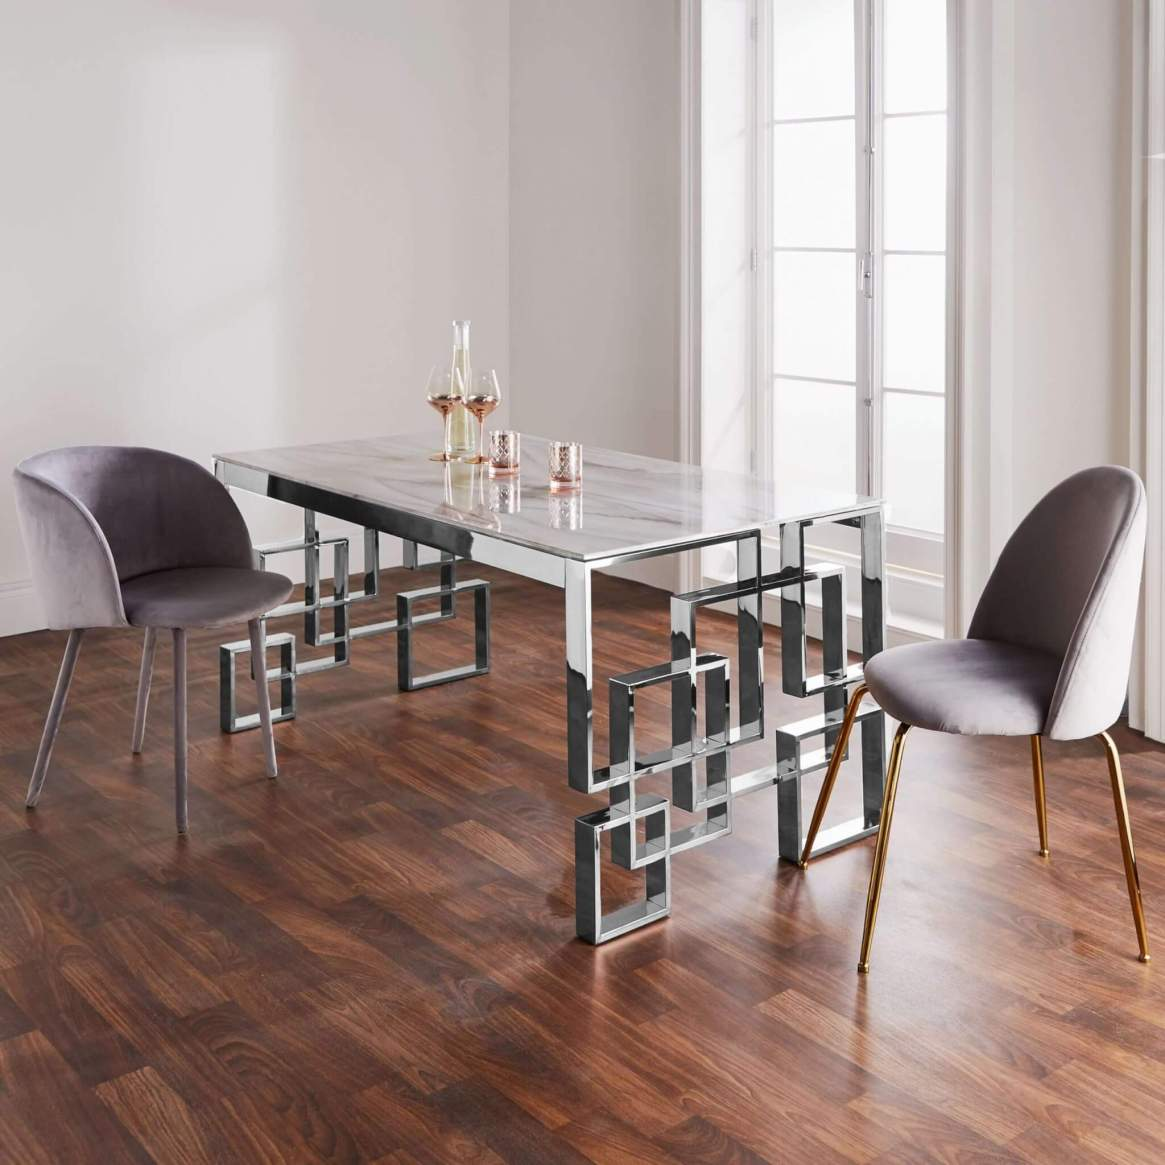 Marble Silver Dining Table